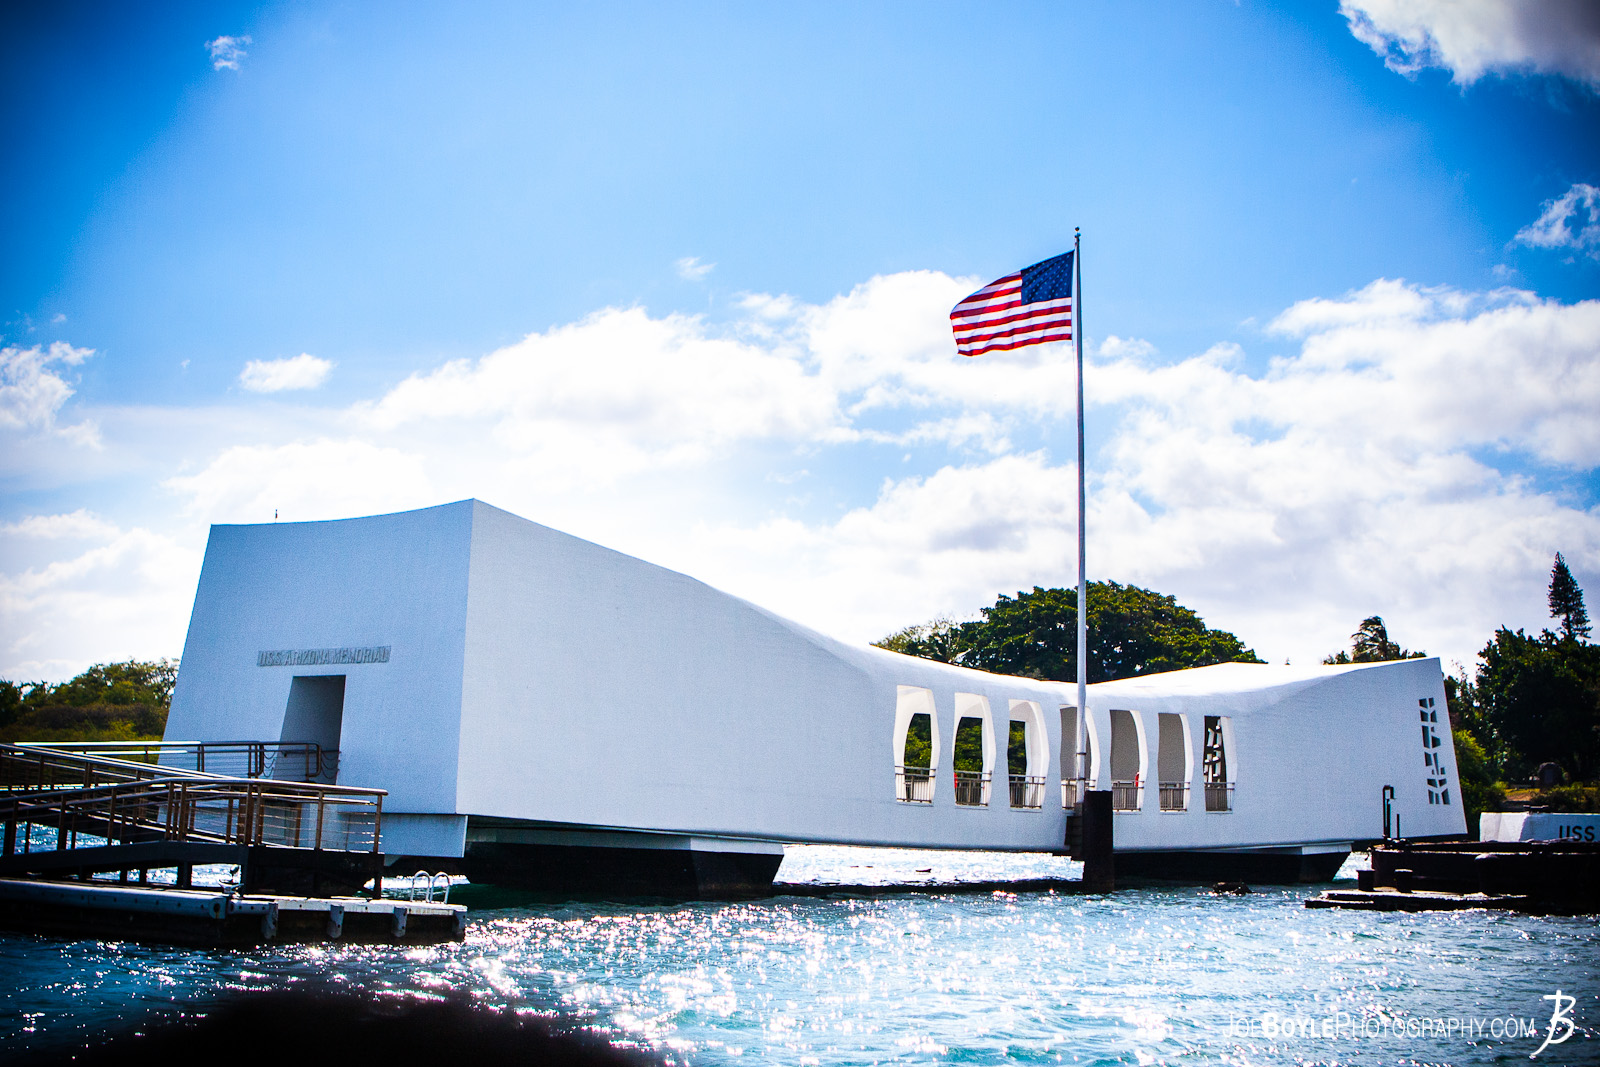 While on a trip to Hawaii I made a visit to Pearl Harbor on Oahu. This picture is of the Arizona Memorial. This memorial is built over the ship which came to it's final resting place after the attack on pearl harbor.